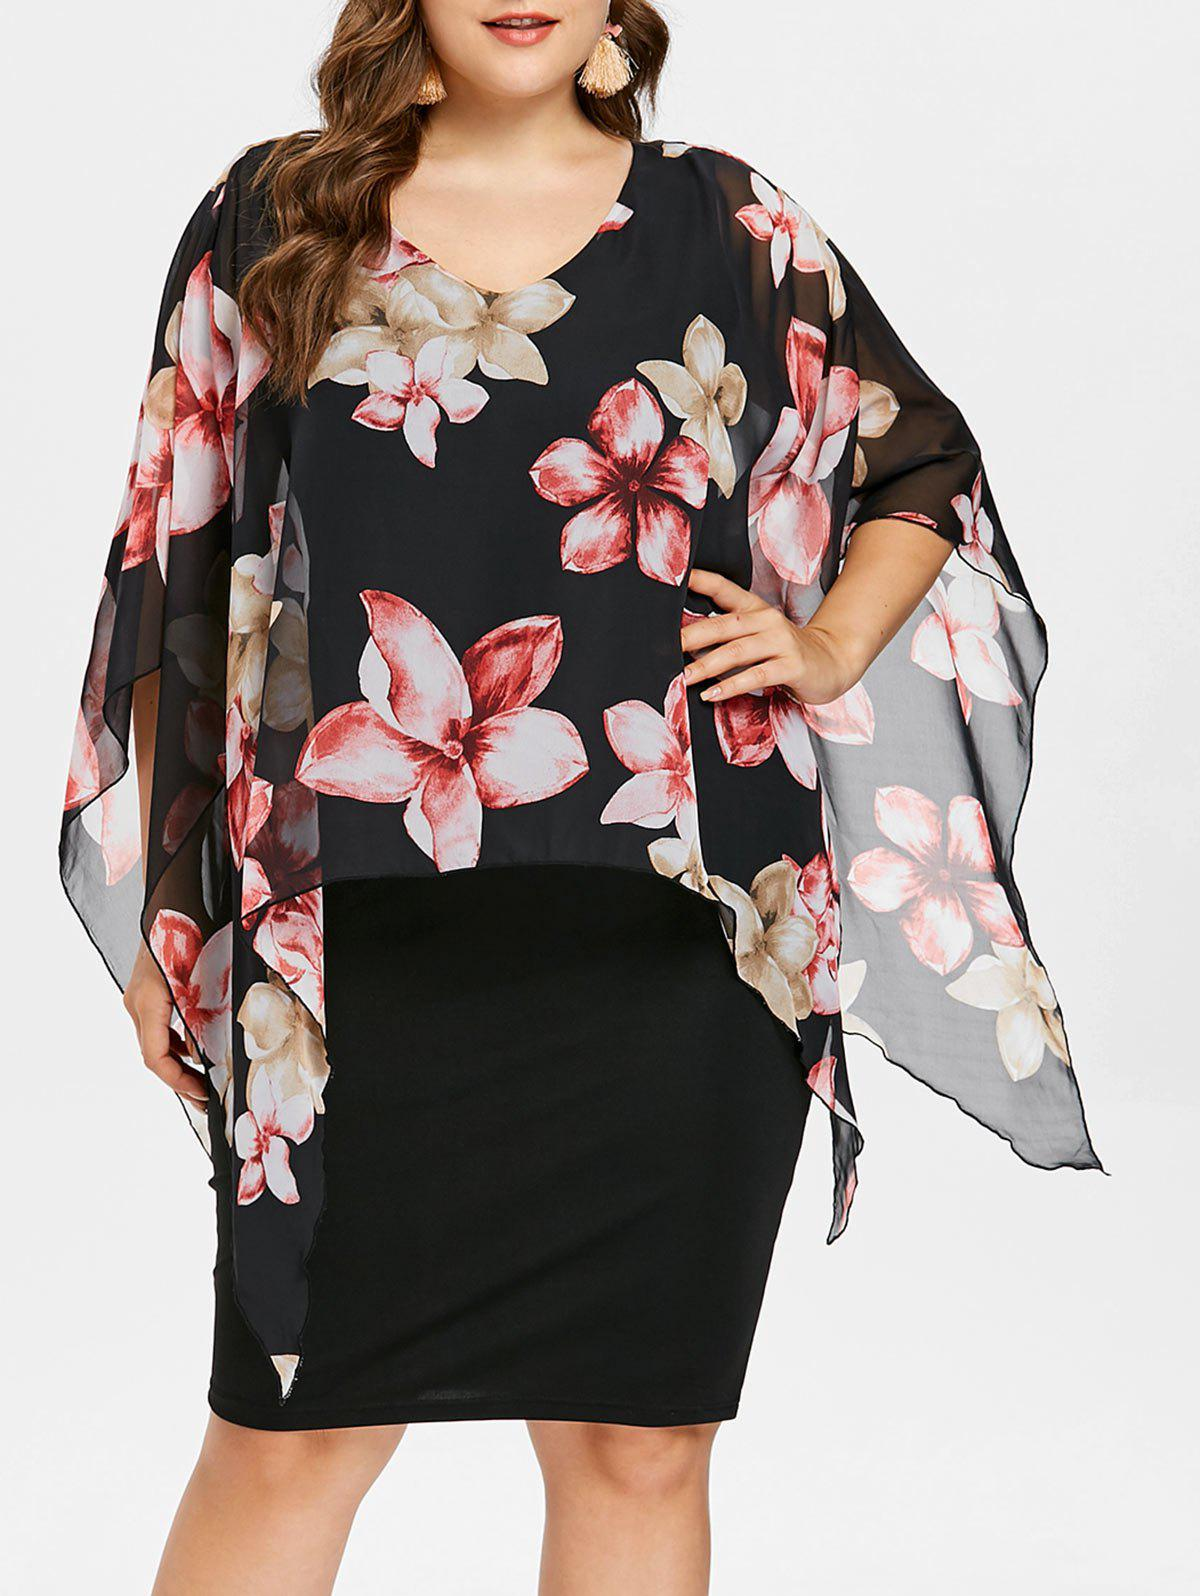 Fancy Plus Size Floral Overlay Sheath Dress